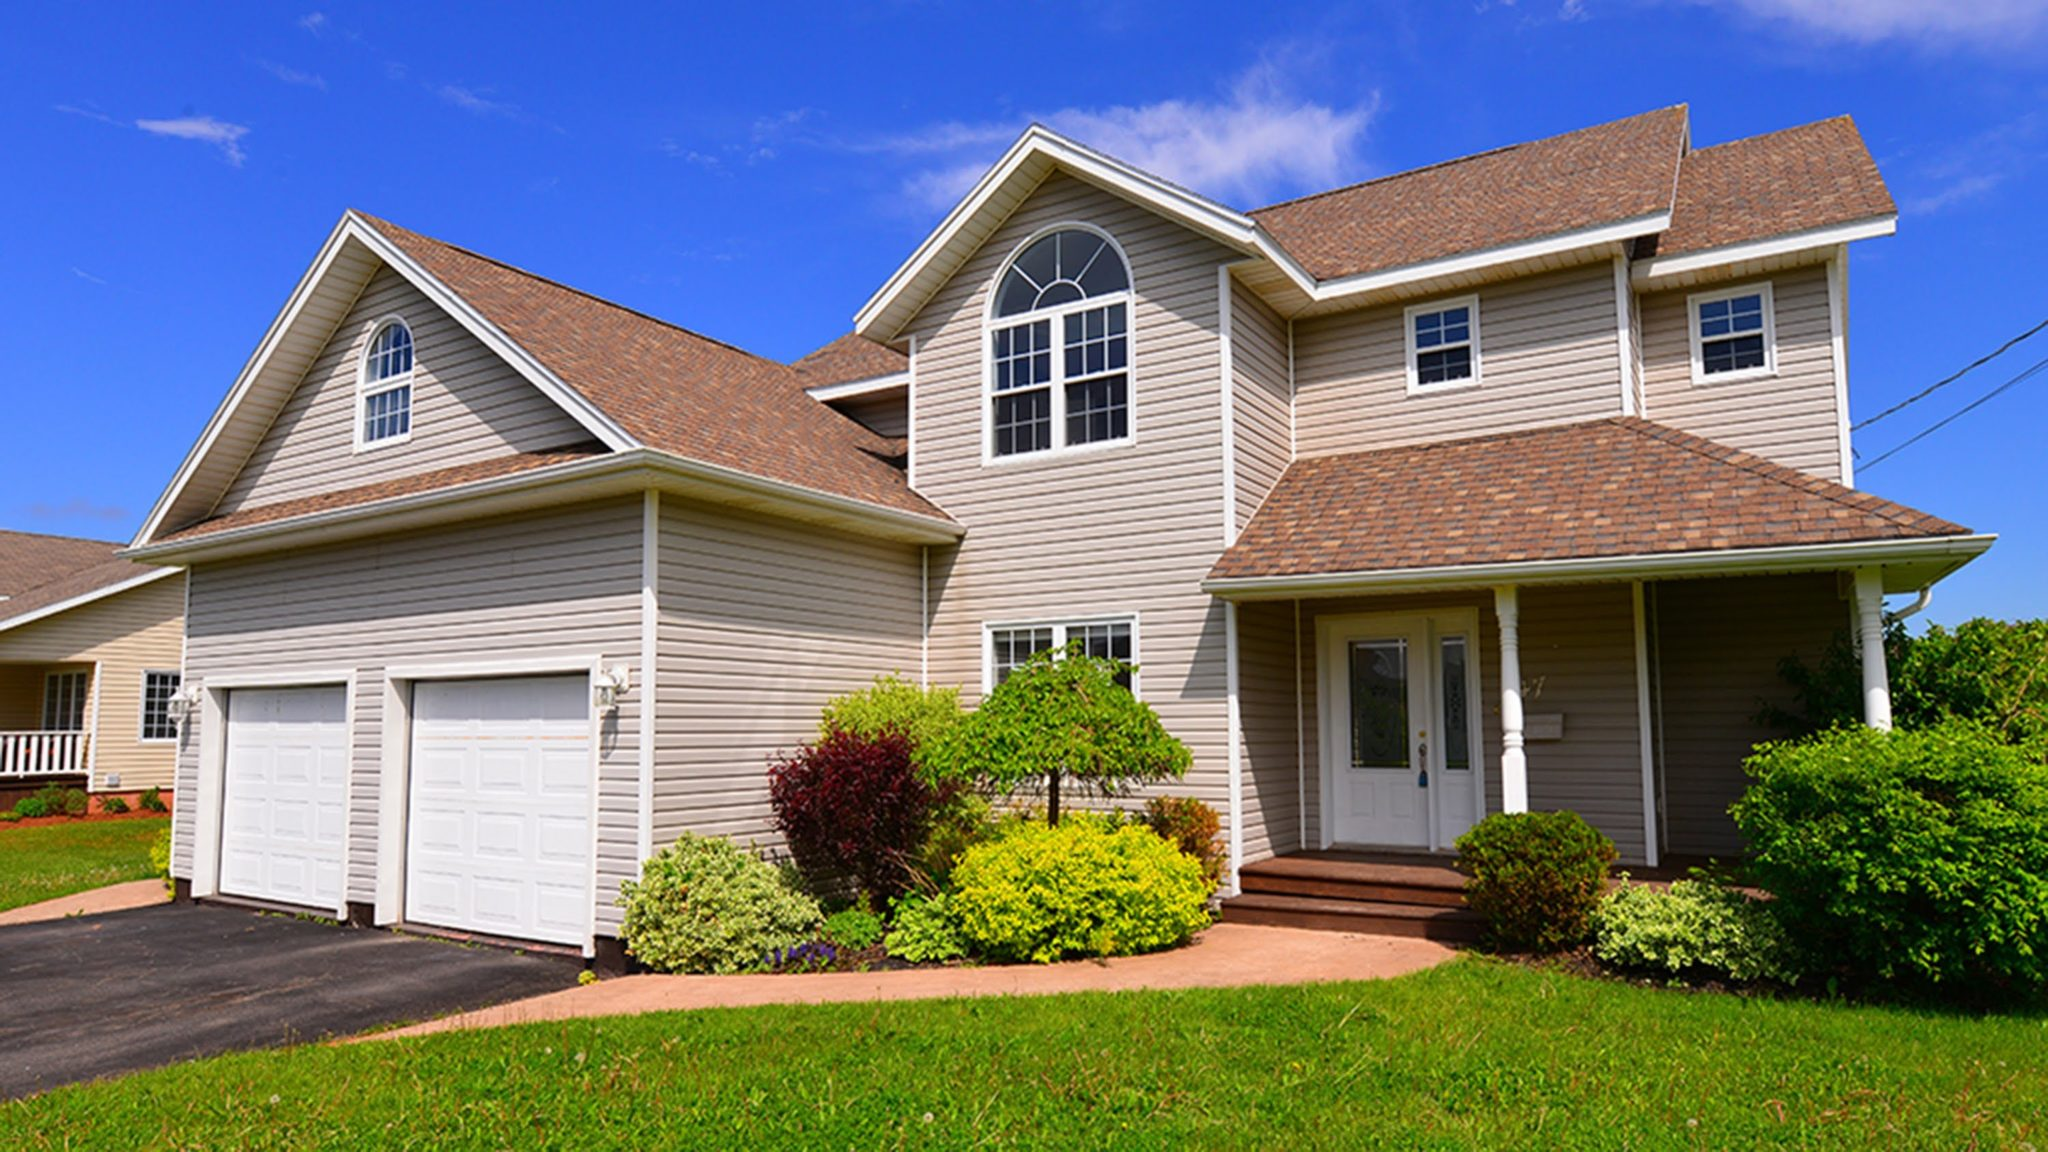 Property management tips how to keep your rentals in move for Portland home